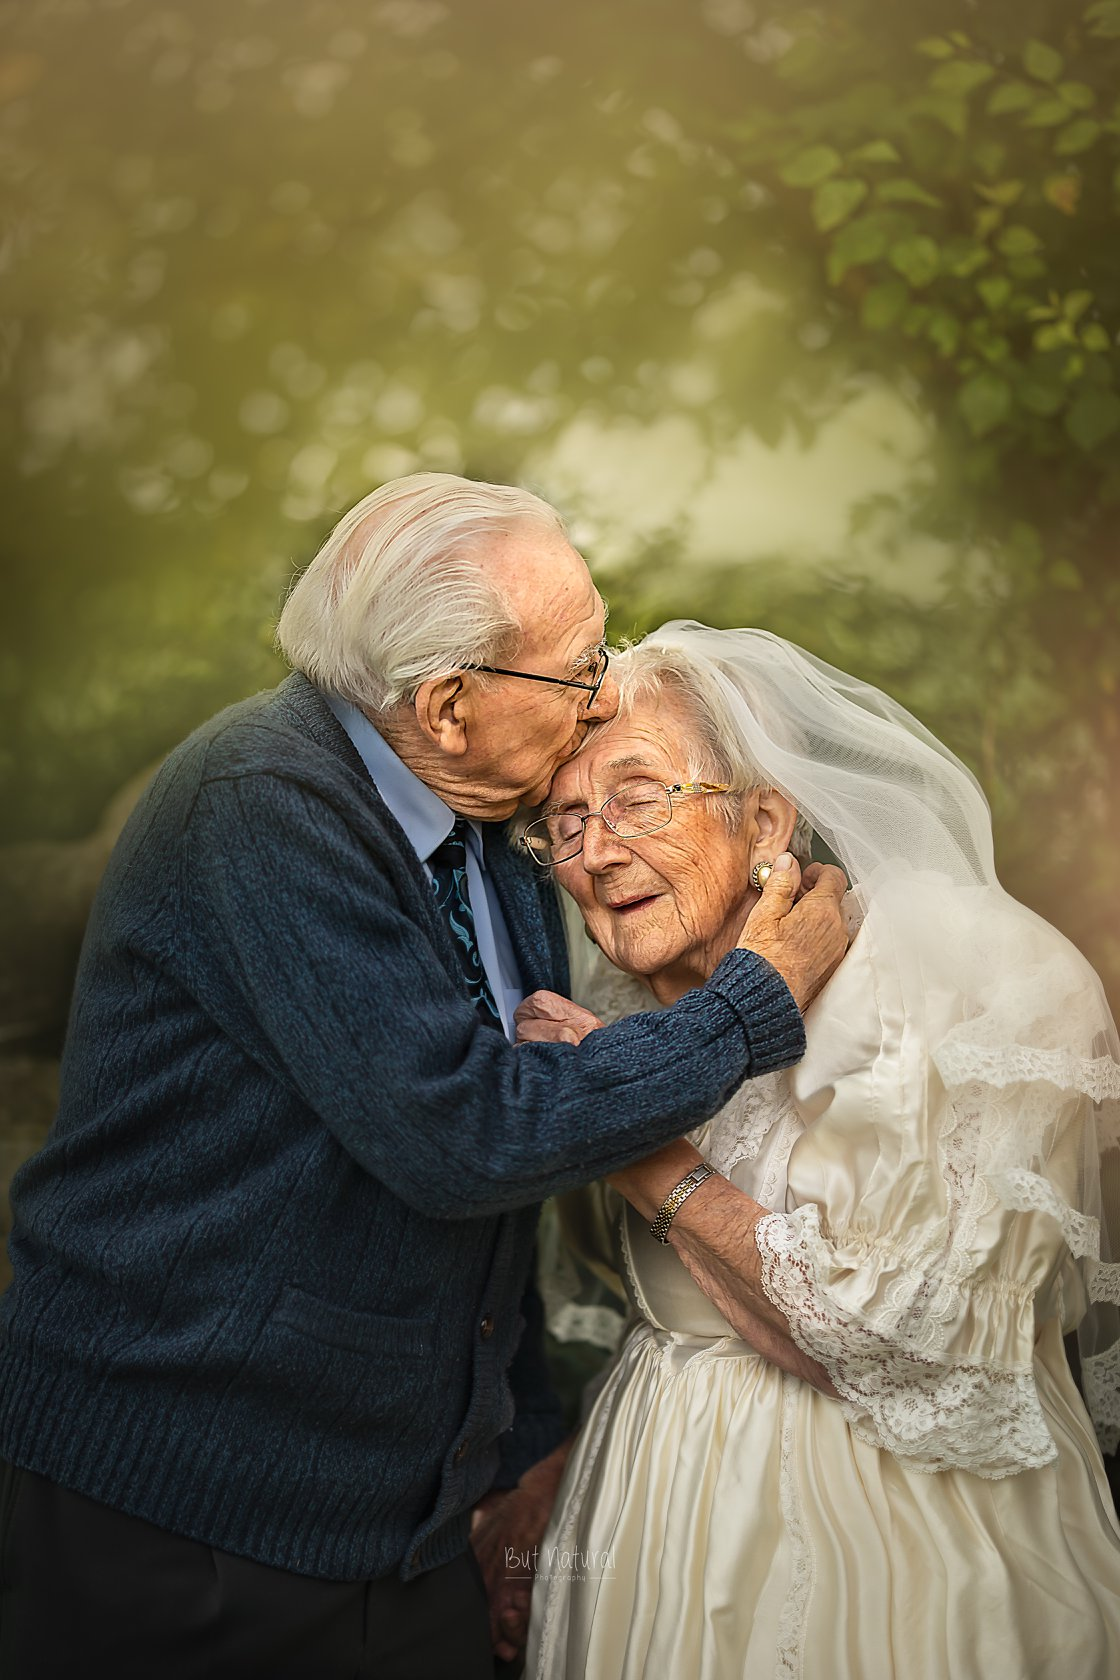 Old couples - Elderly photoshoot by Sujata Setia | But Natural Photography